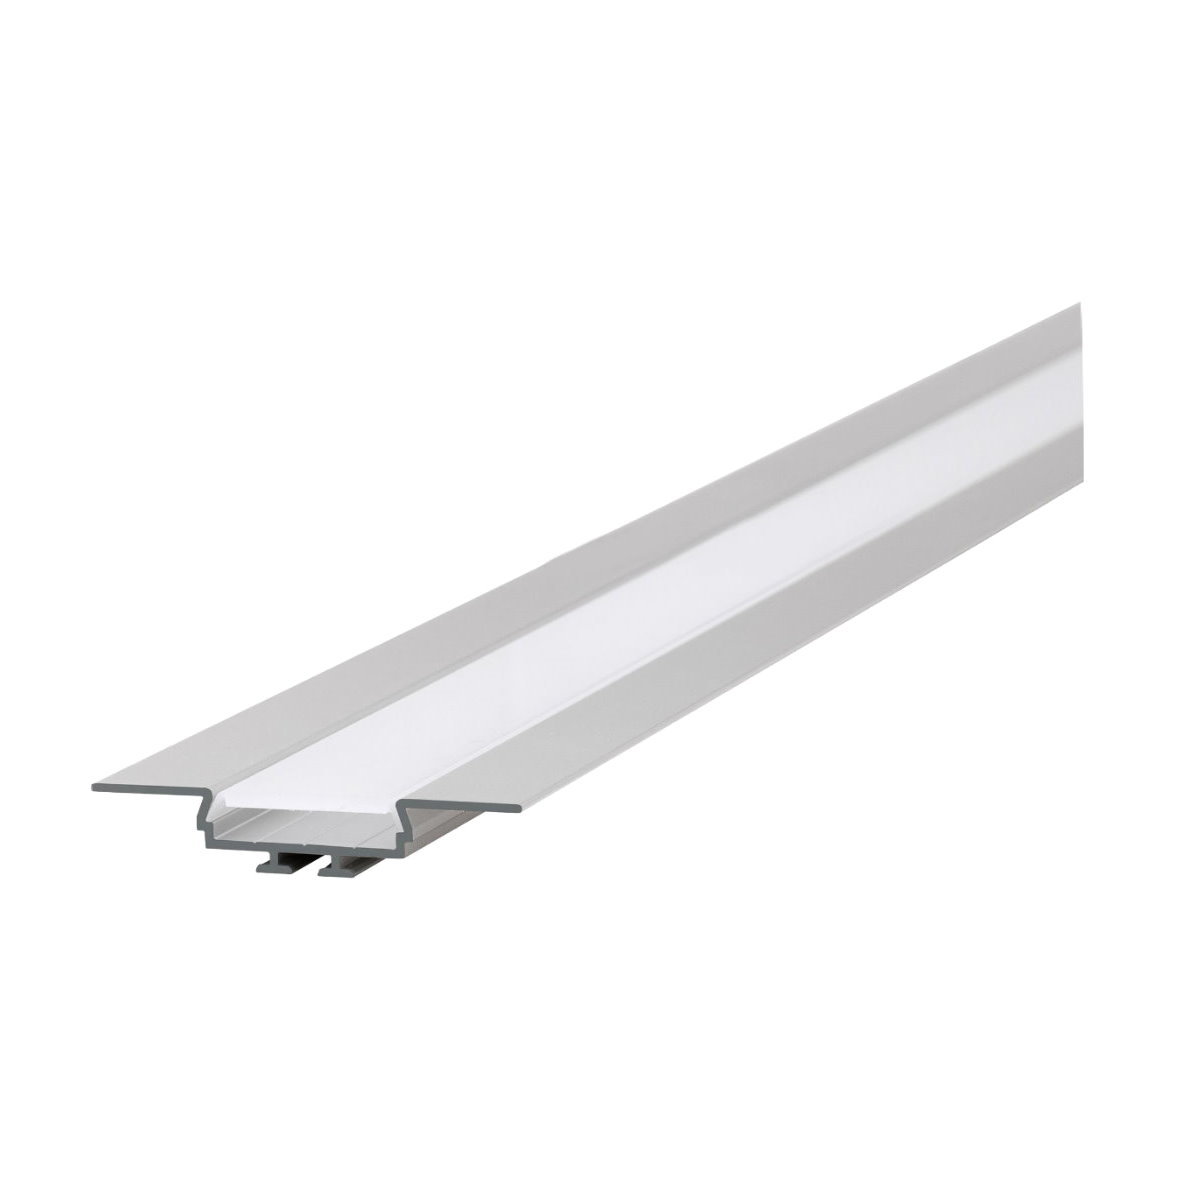 led alu profil aluprofil aluminium schiene strip streifen einbau lichtband 1m 2m ebay. Black Bedroom Furniture Sets. Home Design Ideas